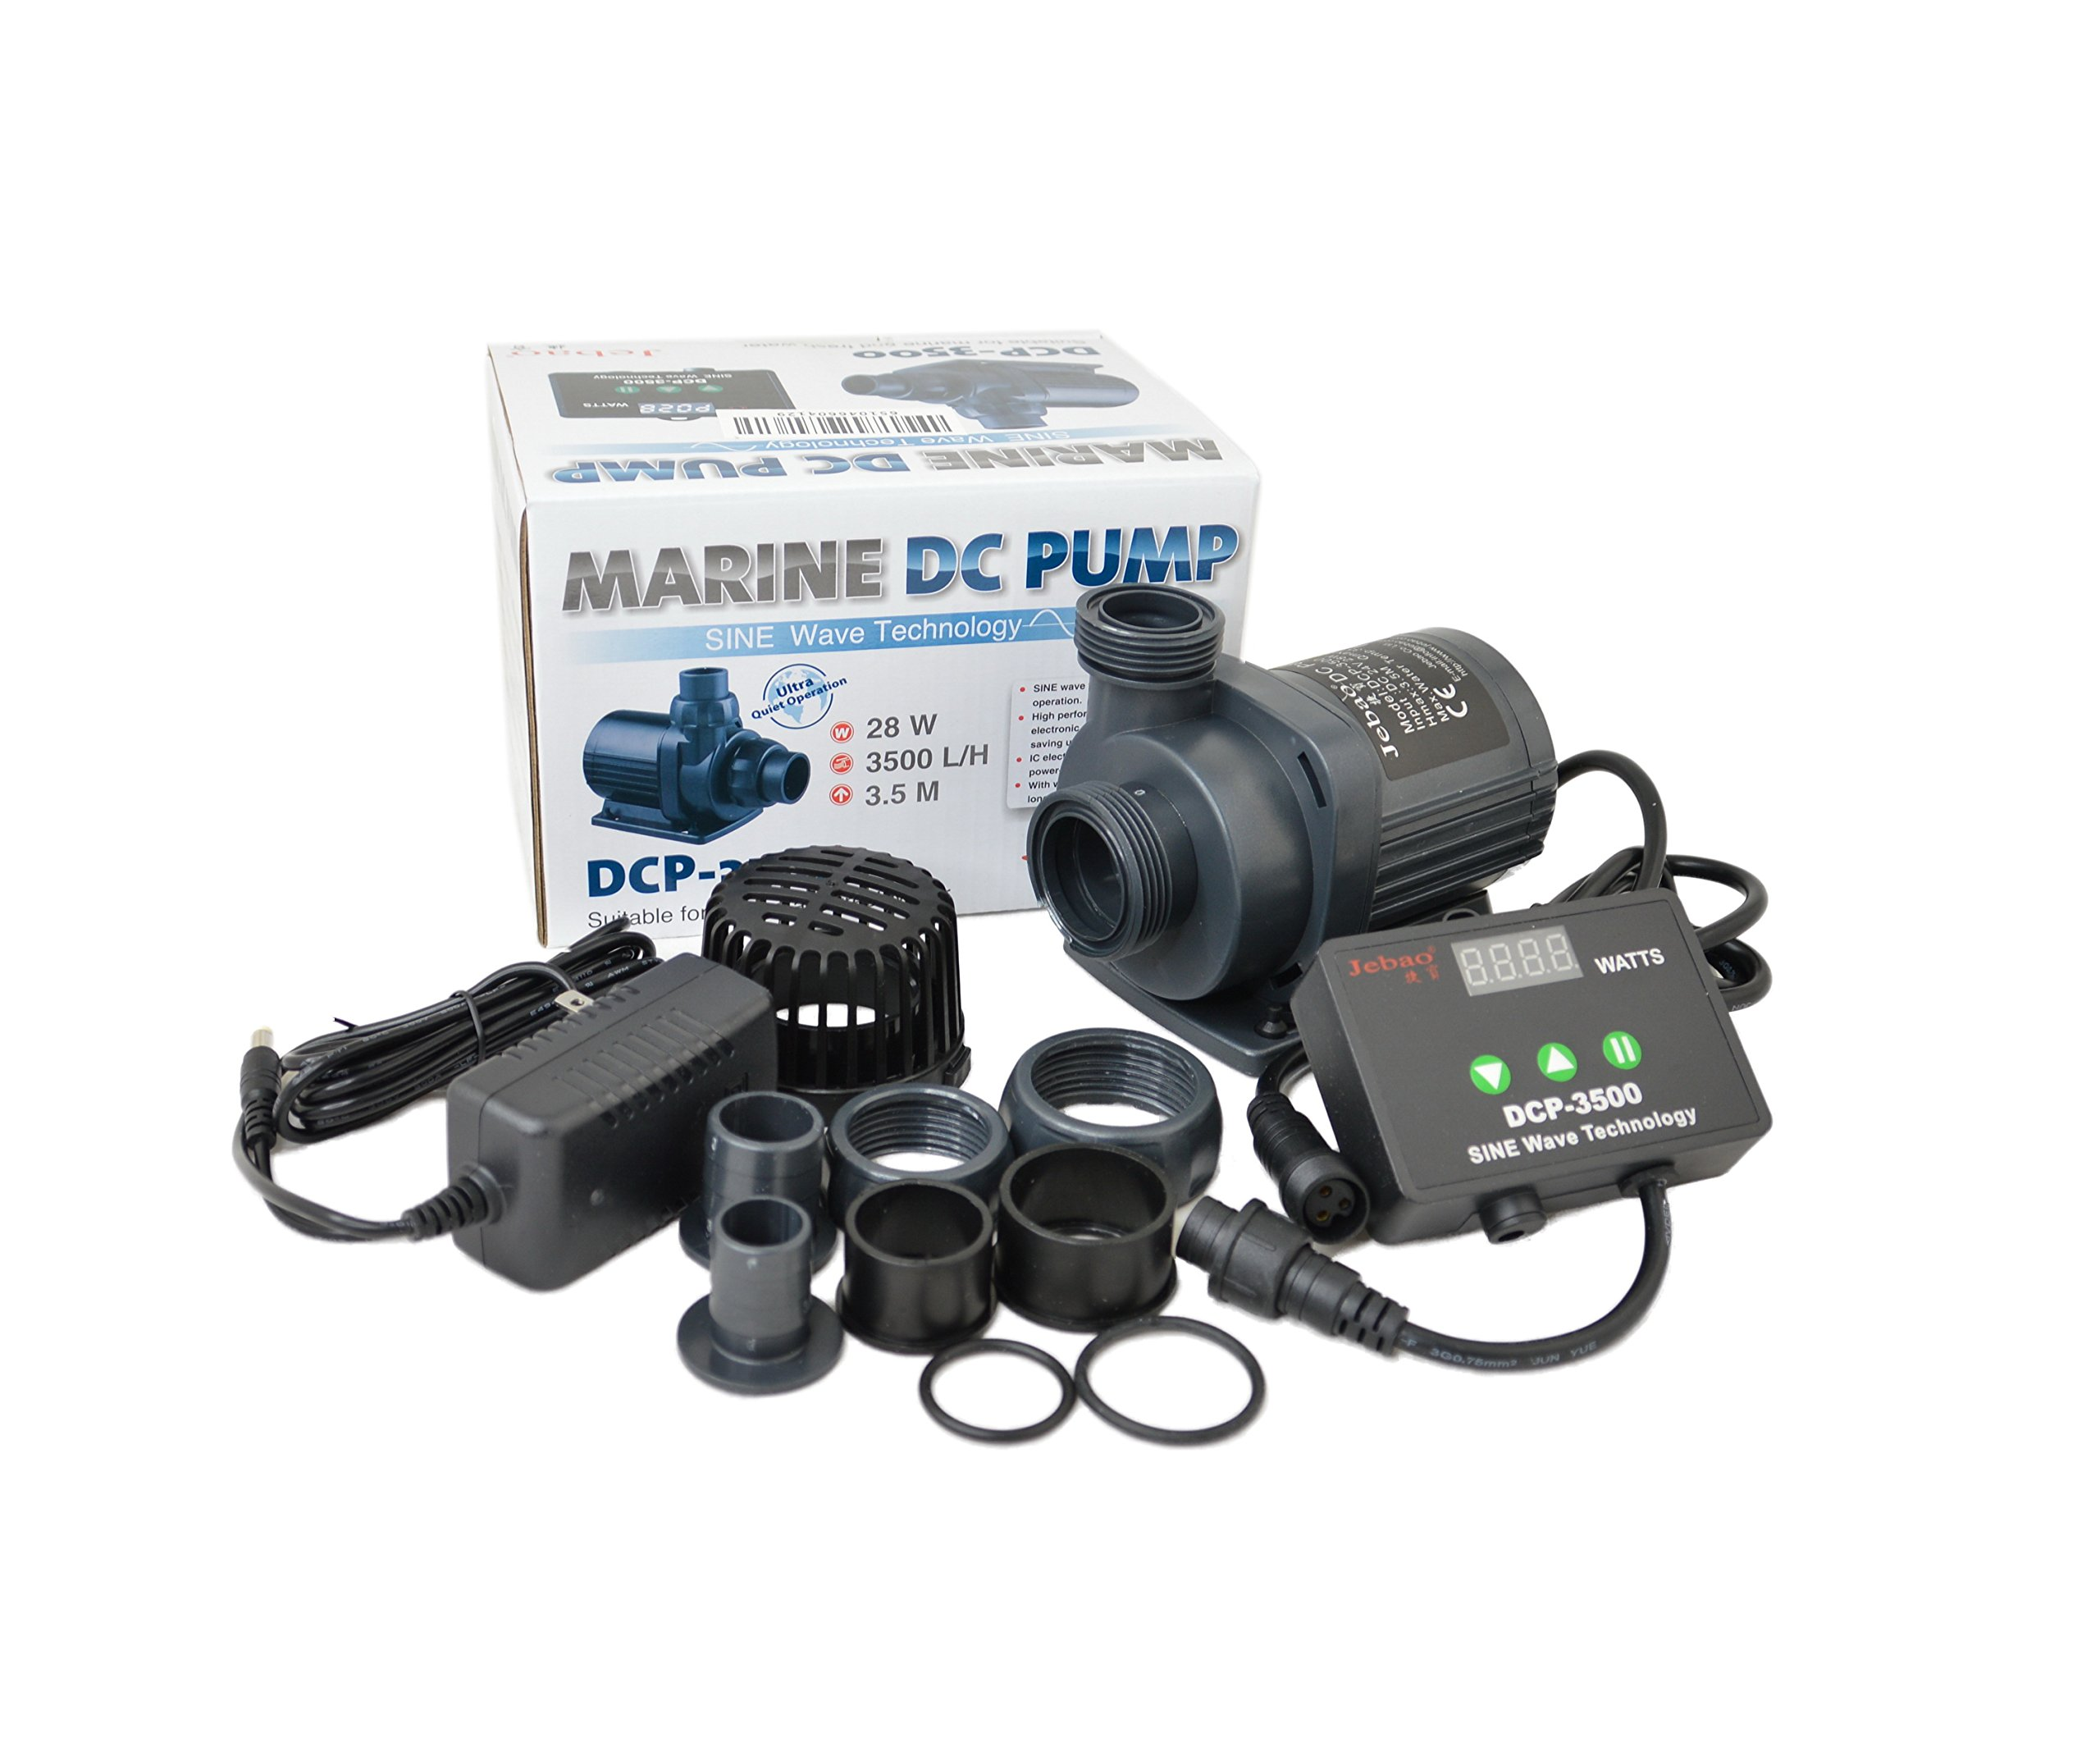 Jebao DCP Sine Wave Water Return Pump (DCP-3500) by Jebao